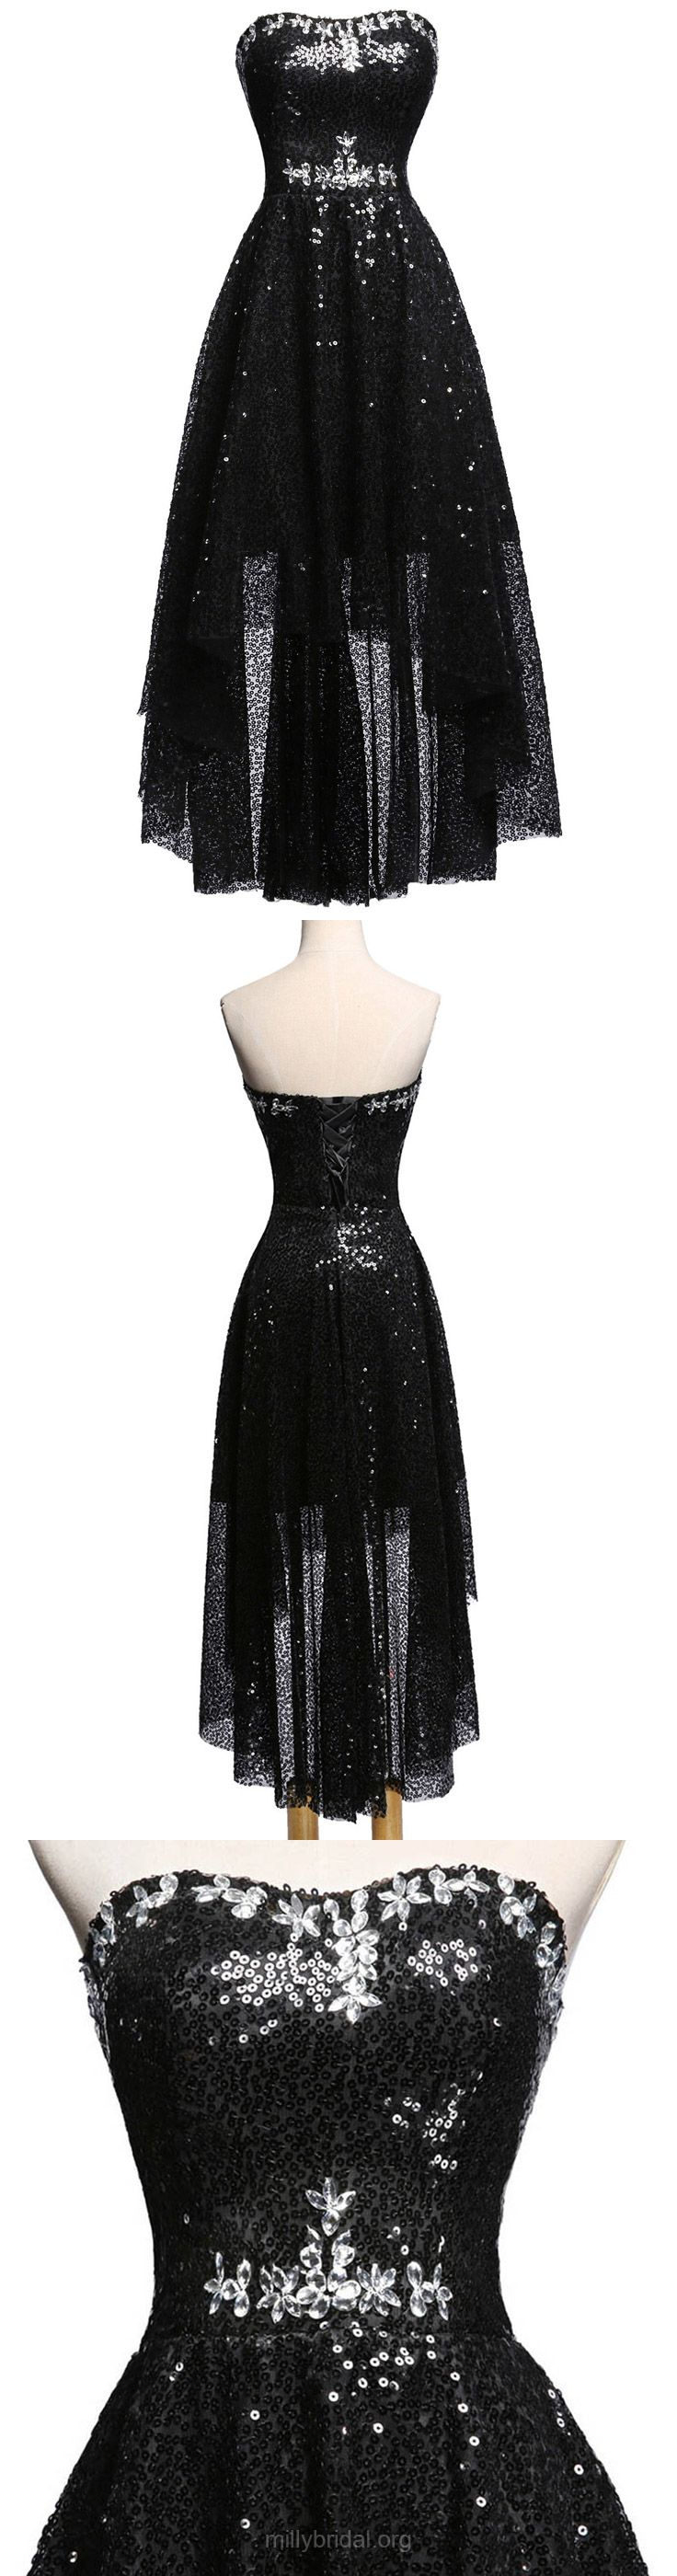 Black Prom Dresses High Low, A-line Party Dresses Sweetheart, Sequined Formal Evening Dresses Asymmetrical Beading